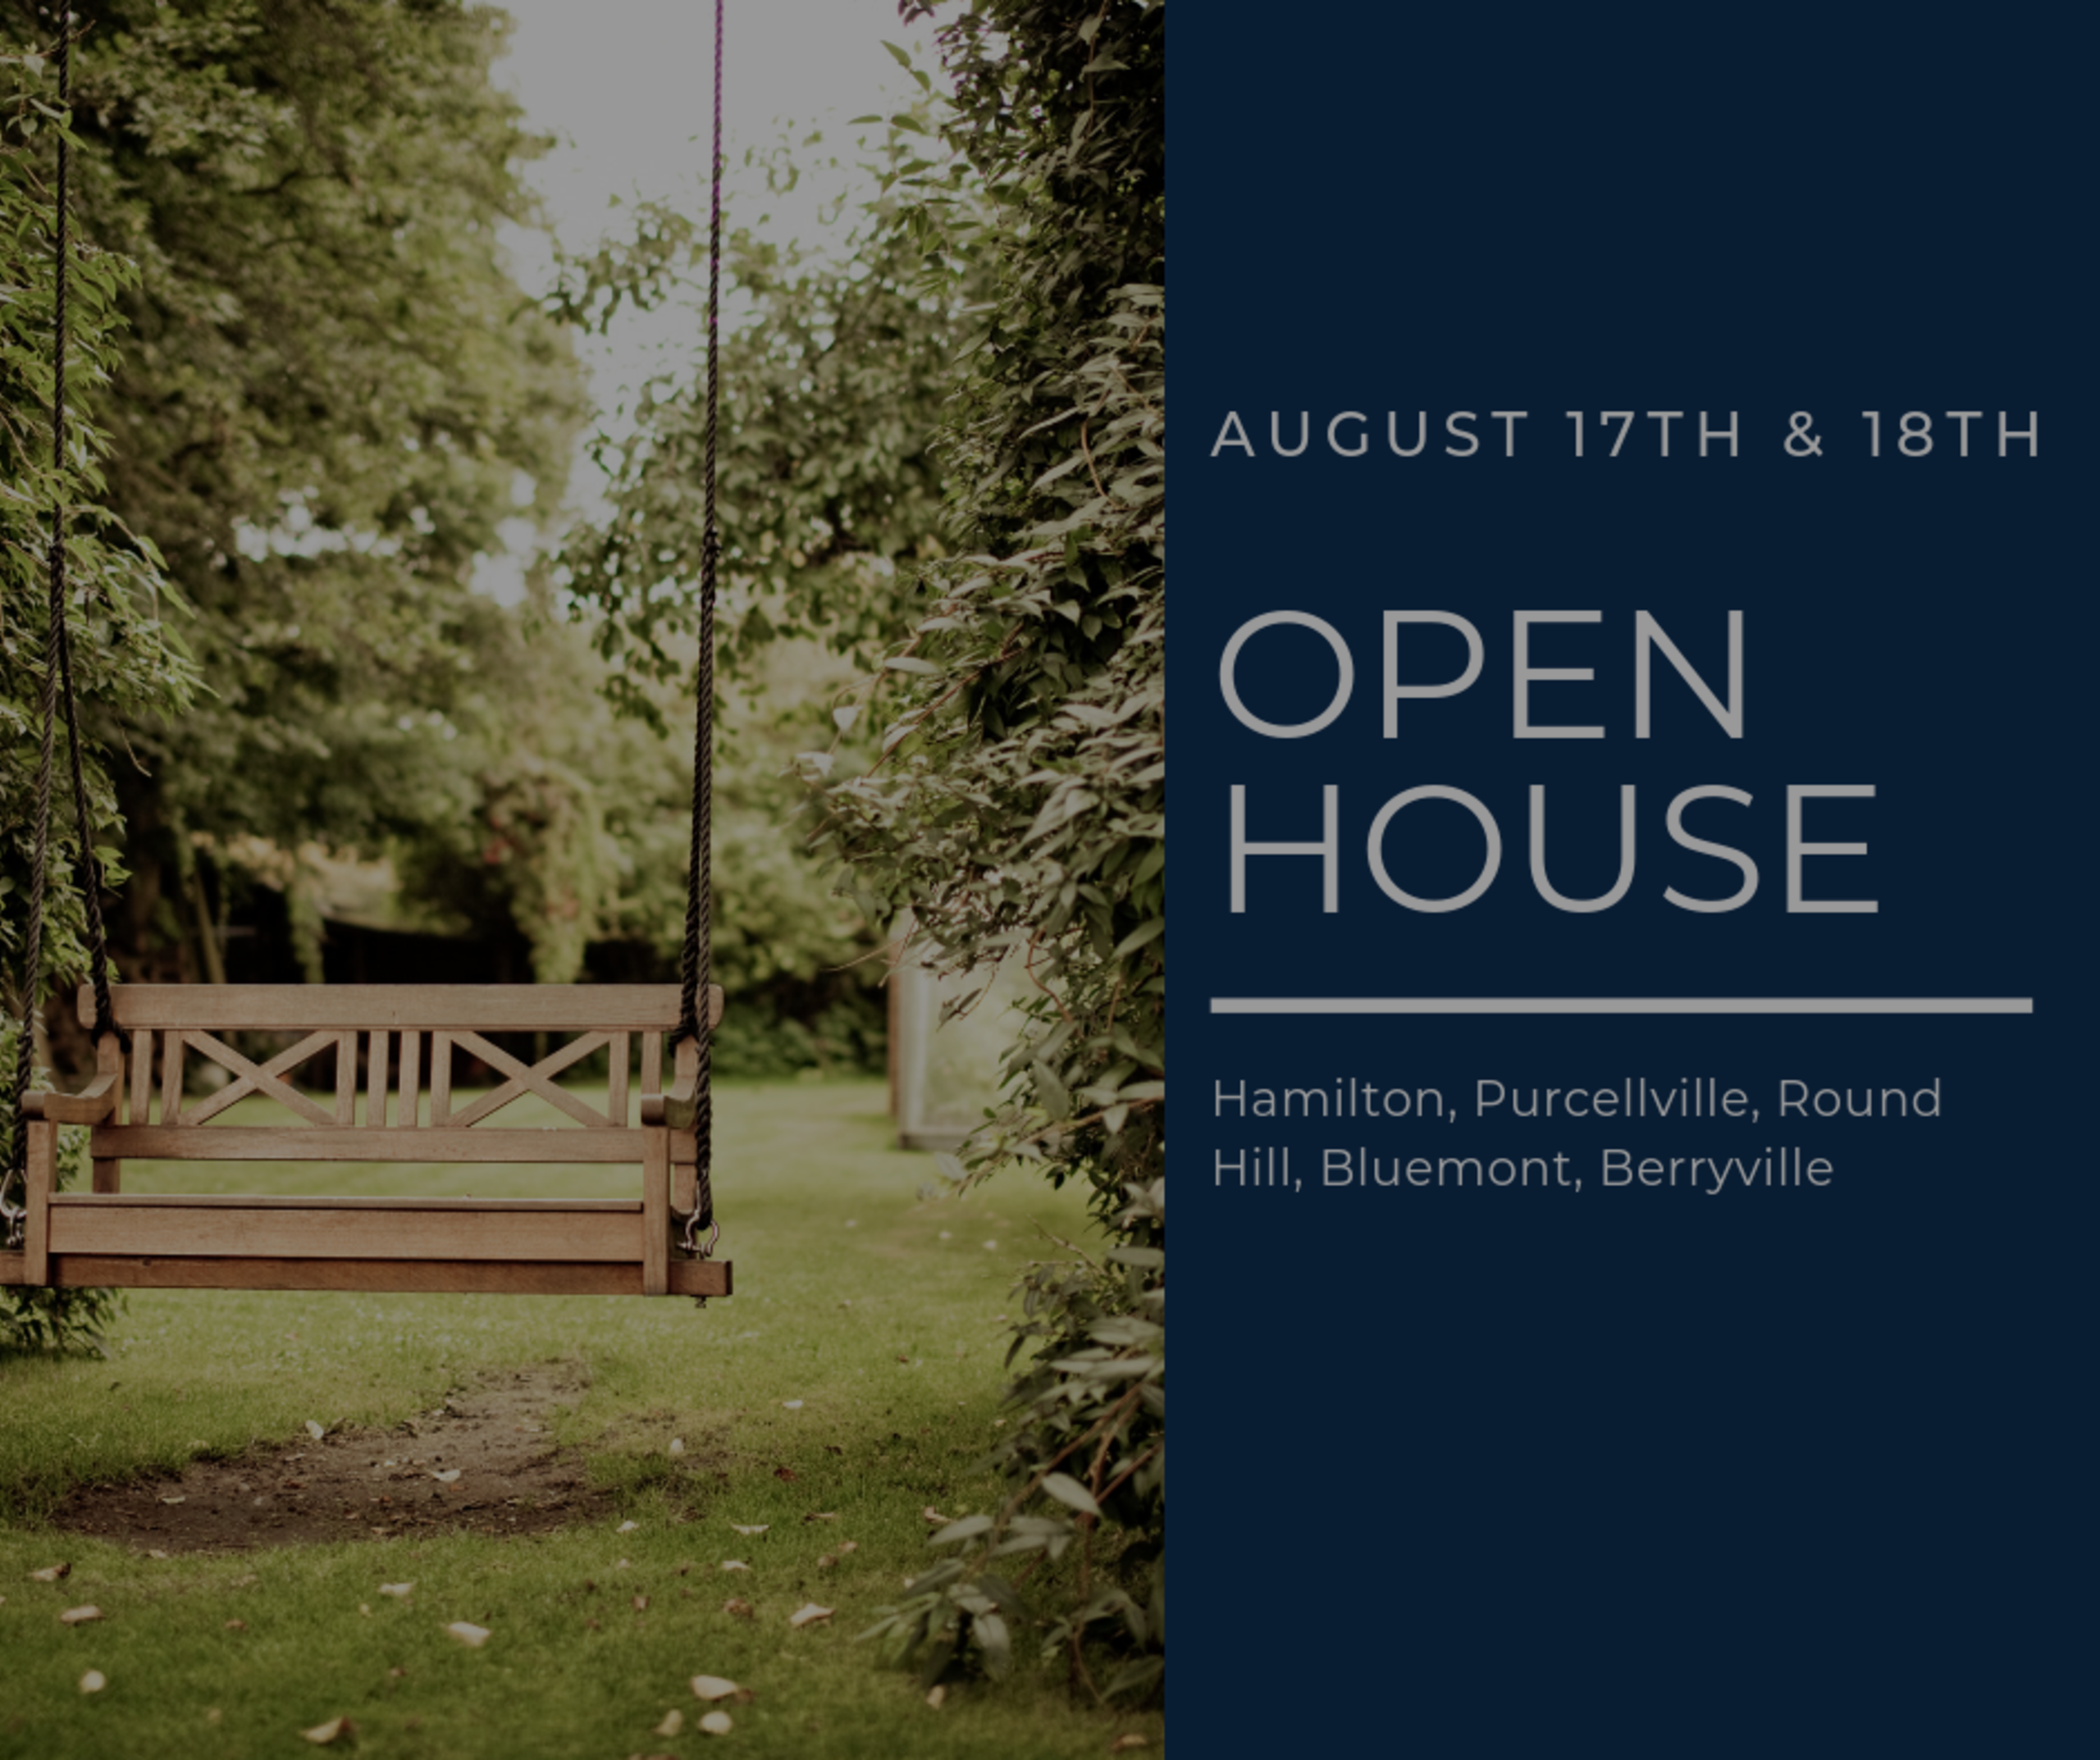 Open House List 8/17/19 – 8/18/19